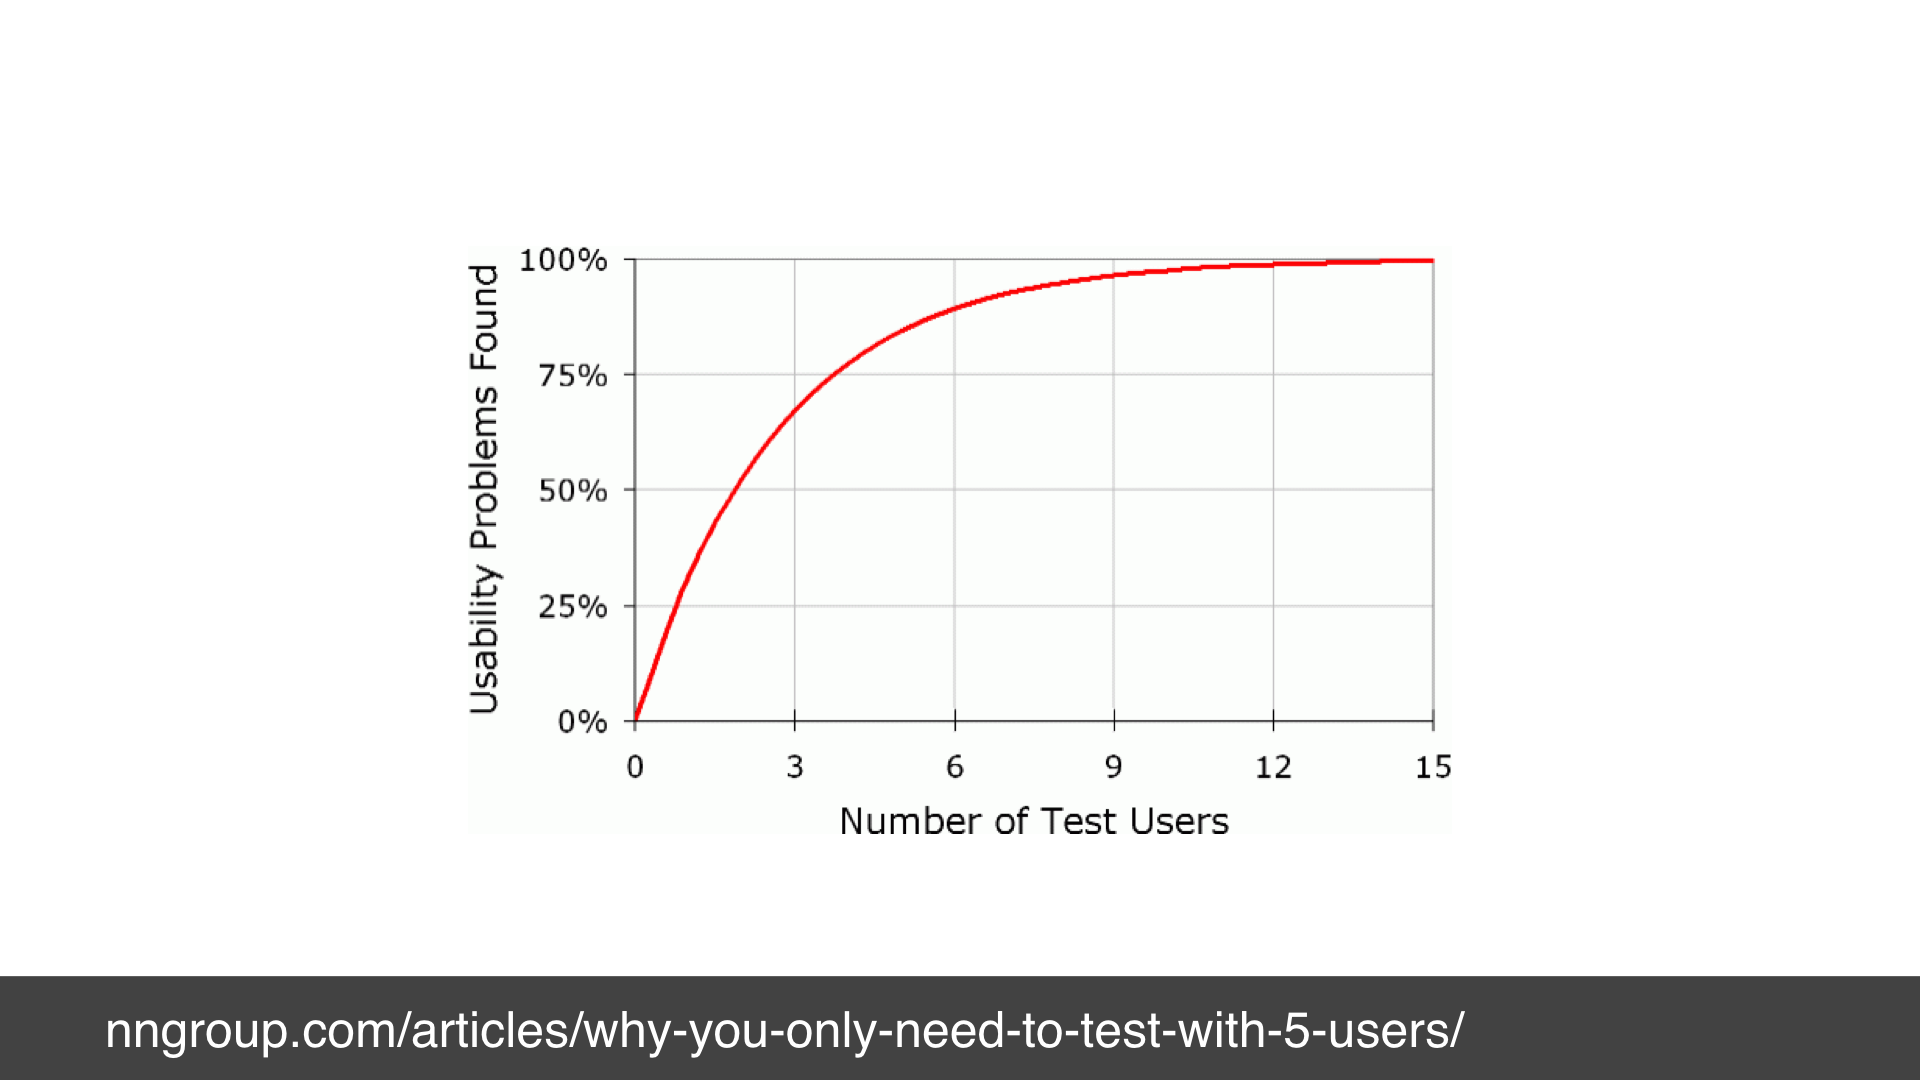 A graph showing that as you do usability testing with more users you find more defects. 1 user gives 31%, 5 users give around 75%, 15 users give around 100%